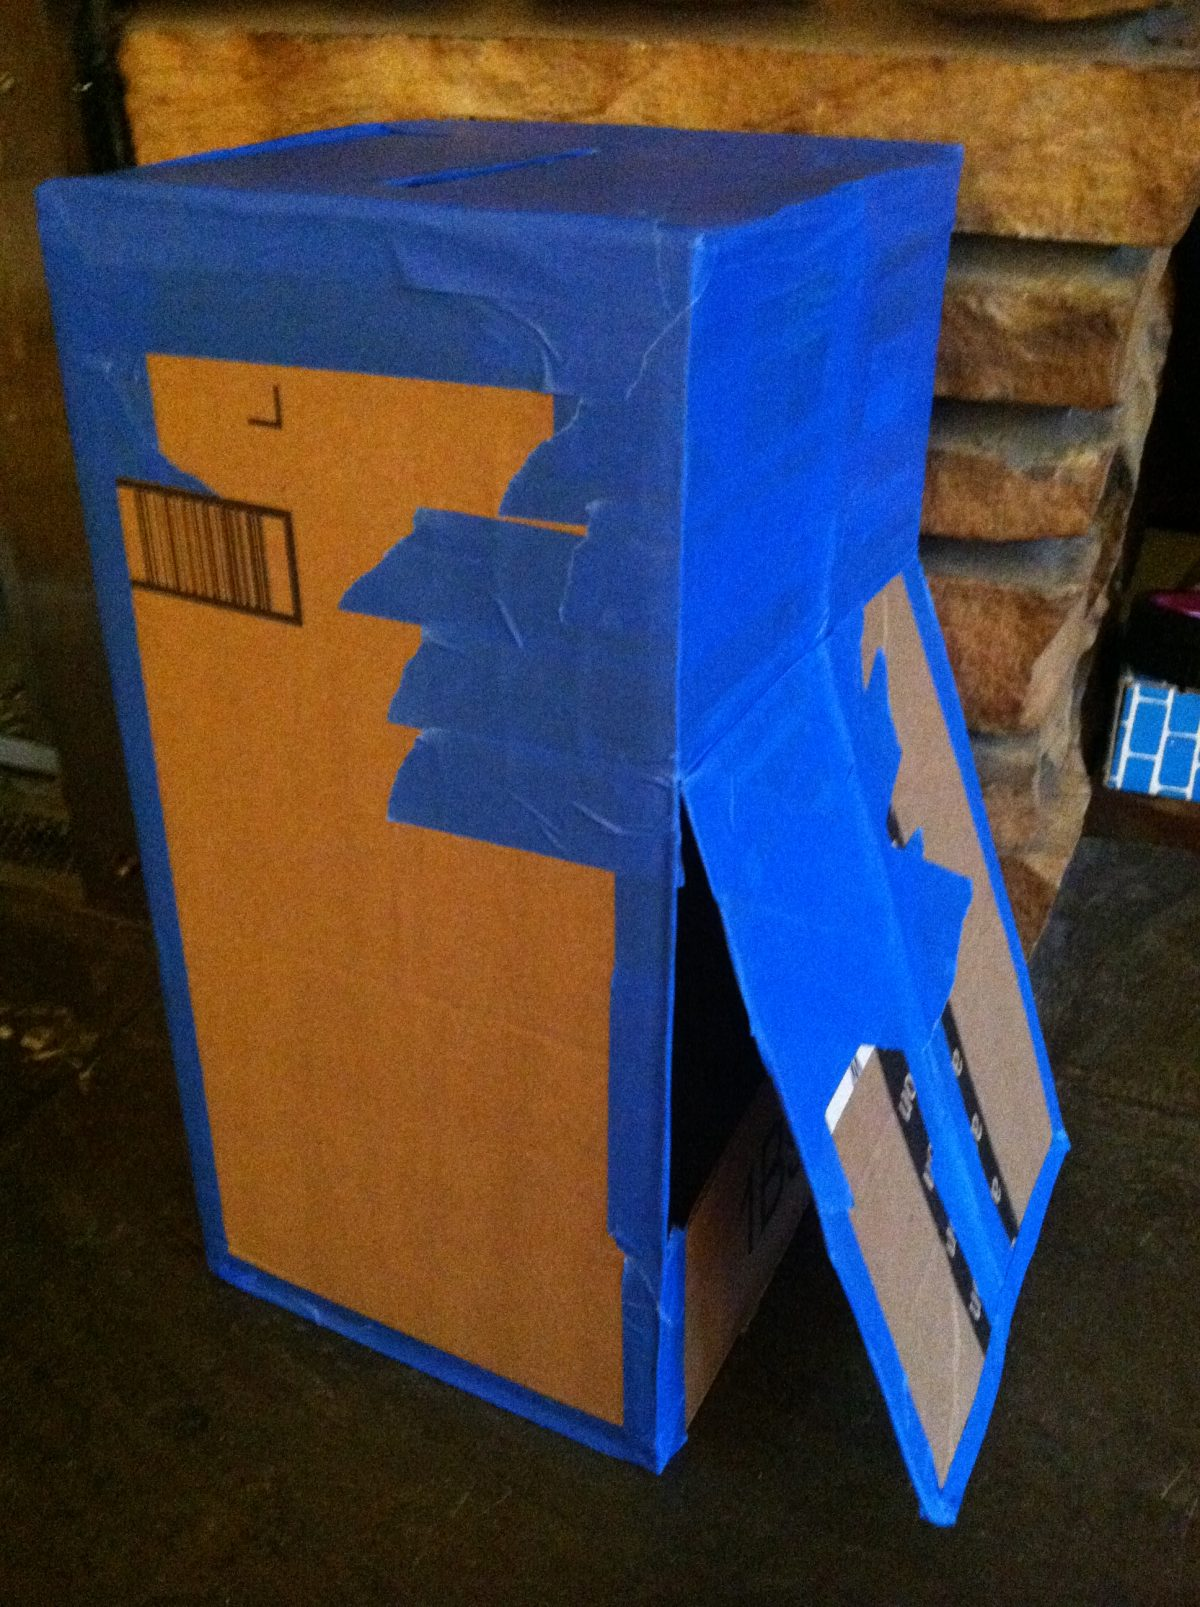 Flapon Diy Cardboard Mailbox Play A Flap On The Back Allows Retrieval Of